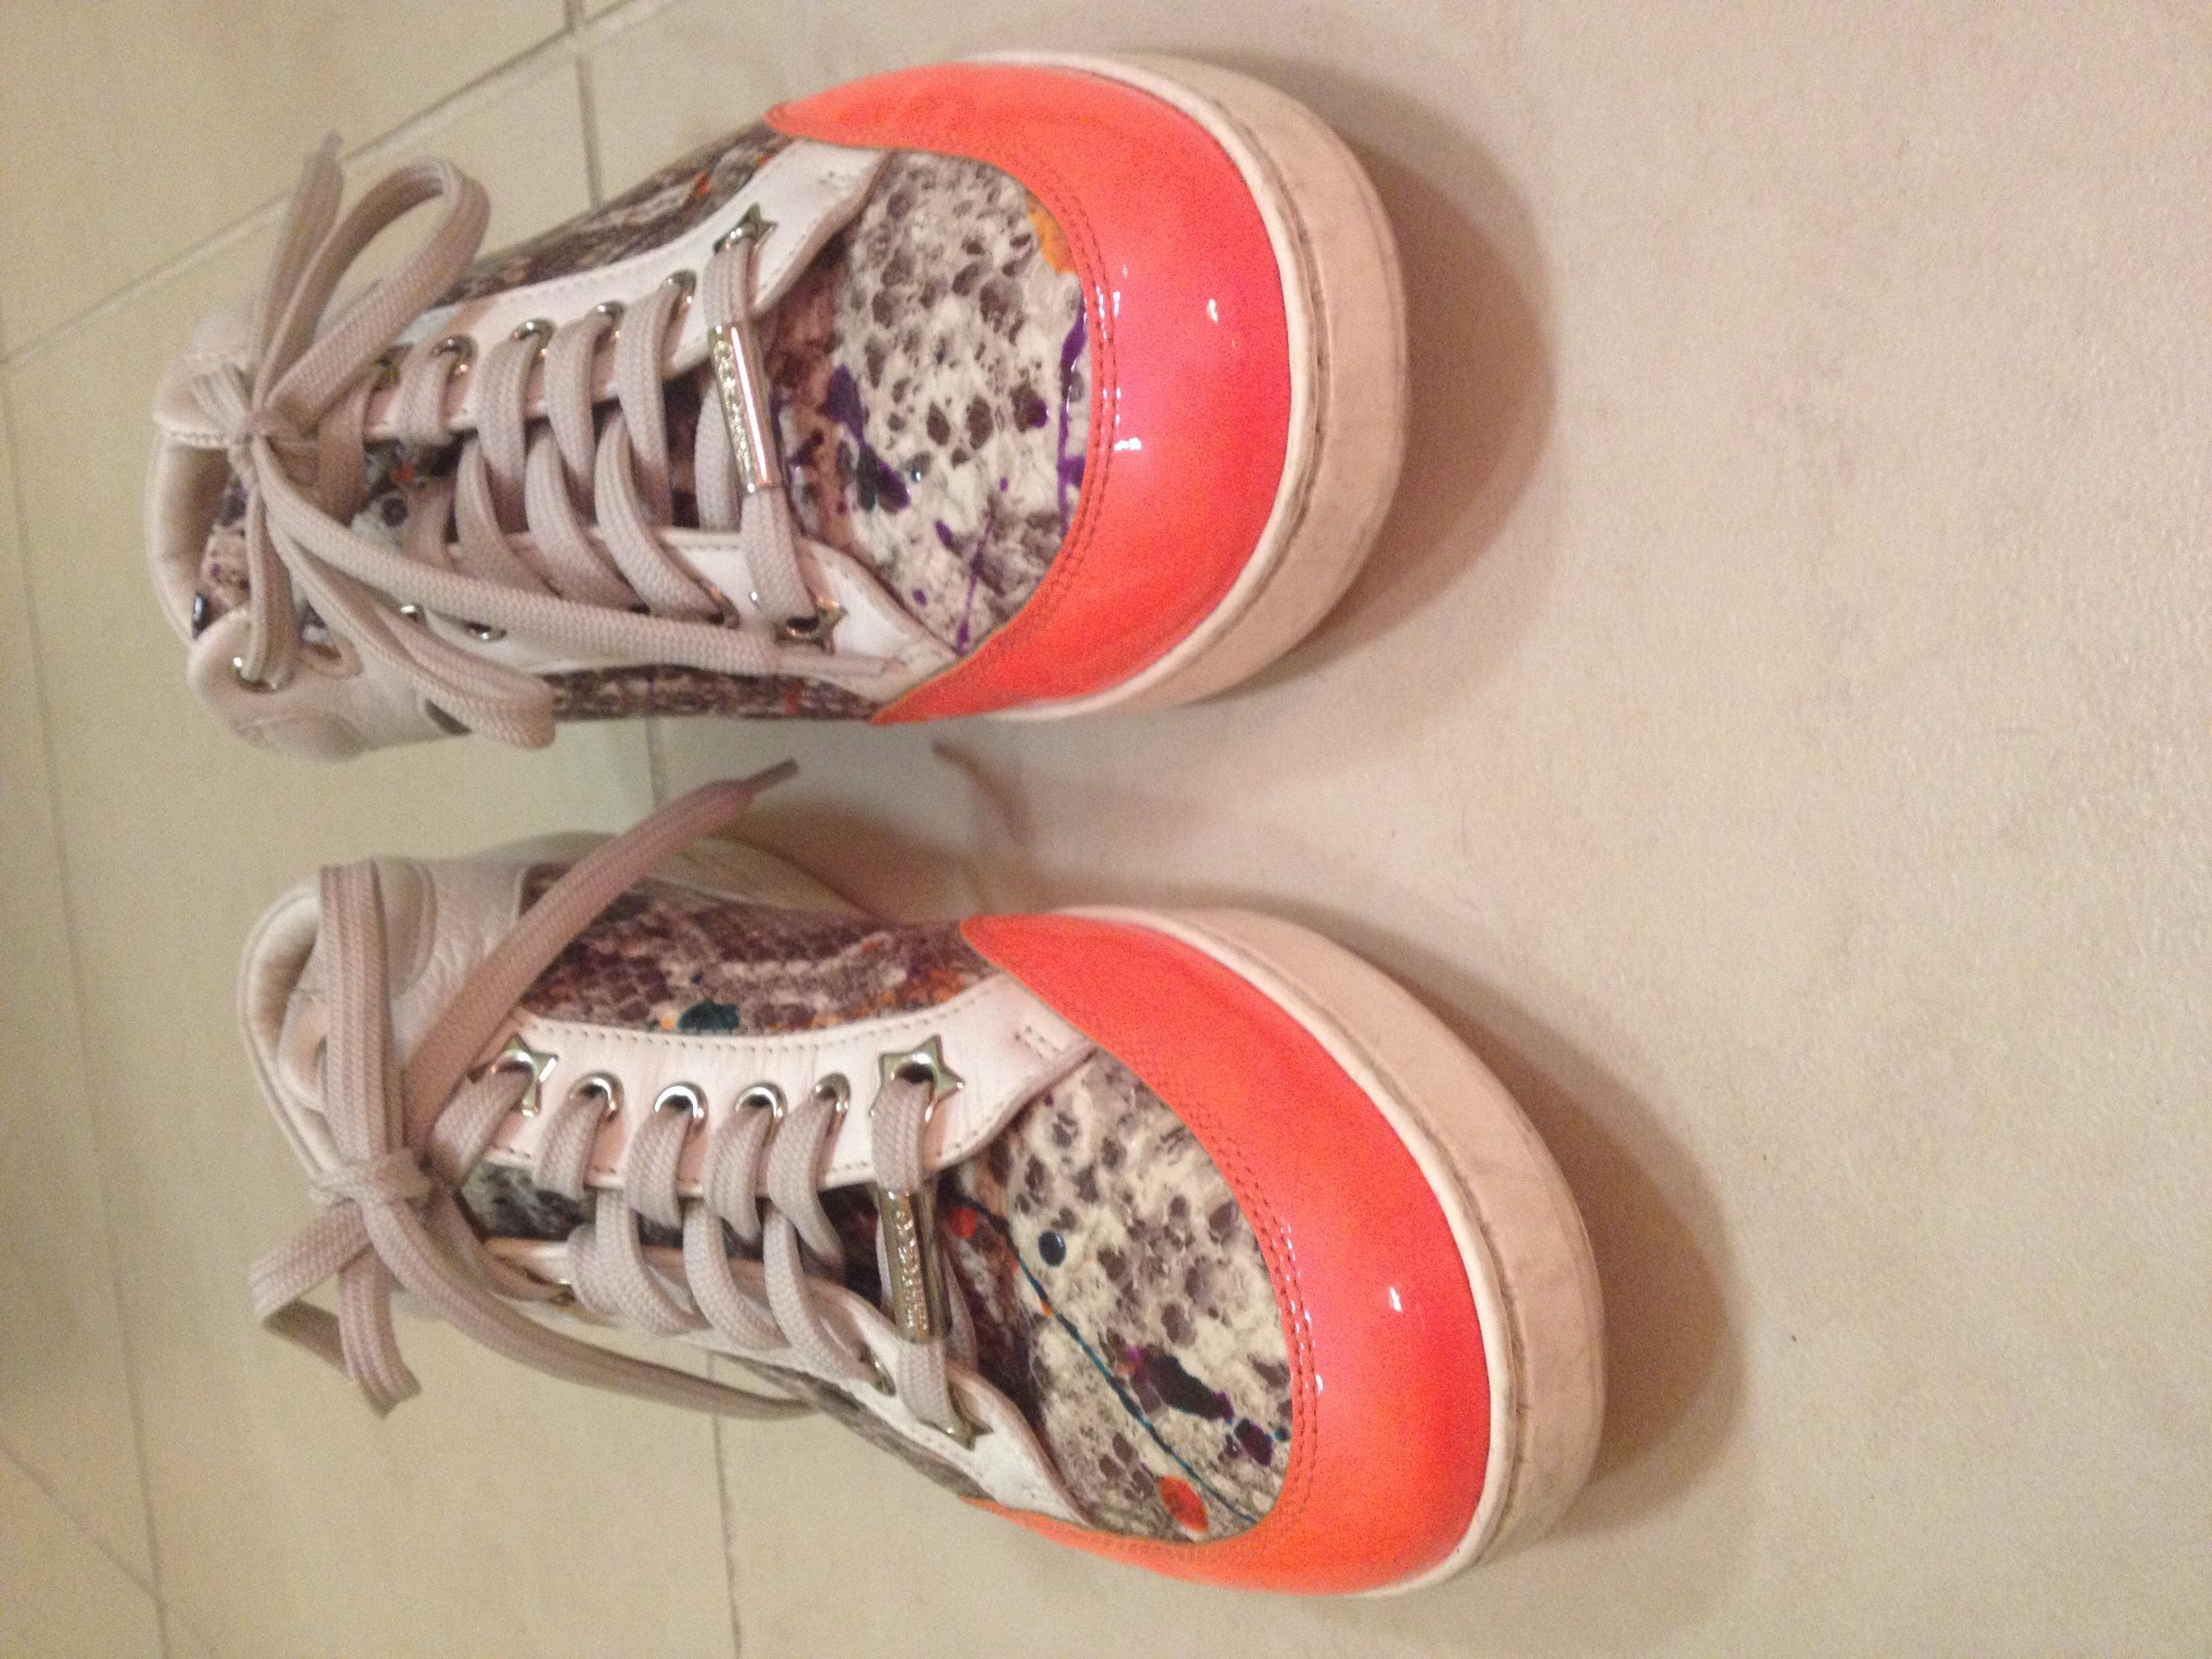 jimmy choo orange london   & & & # 039; s les baskets des baskets taille nous réguliers (m, b) 6,5 aeff0c